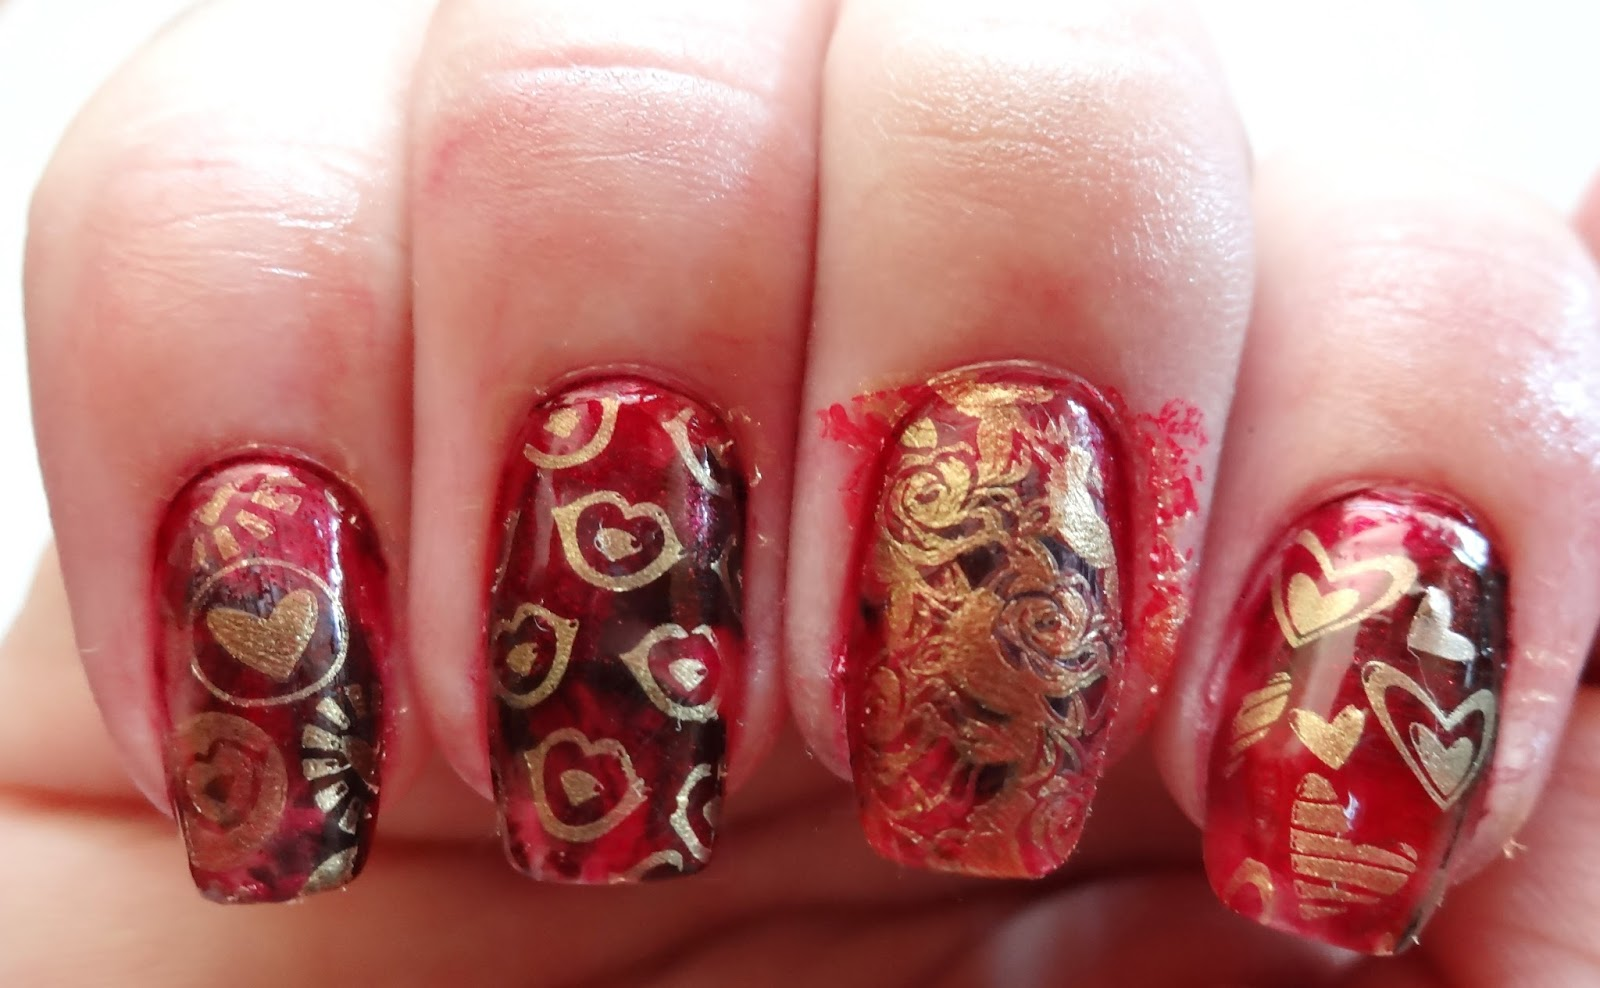 Stamp designs on nails